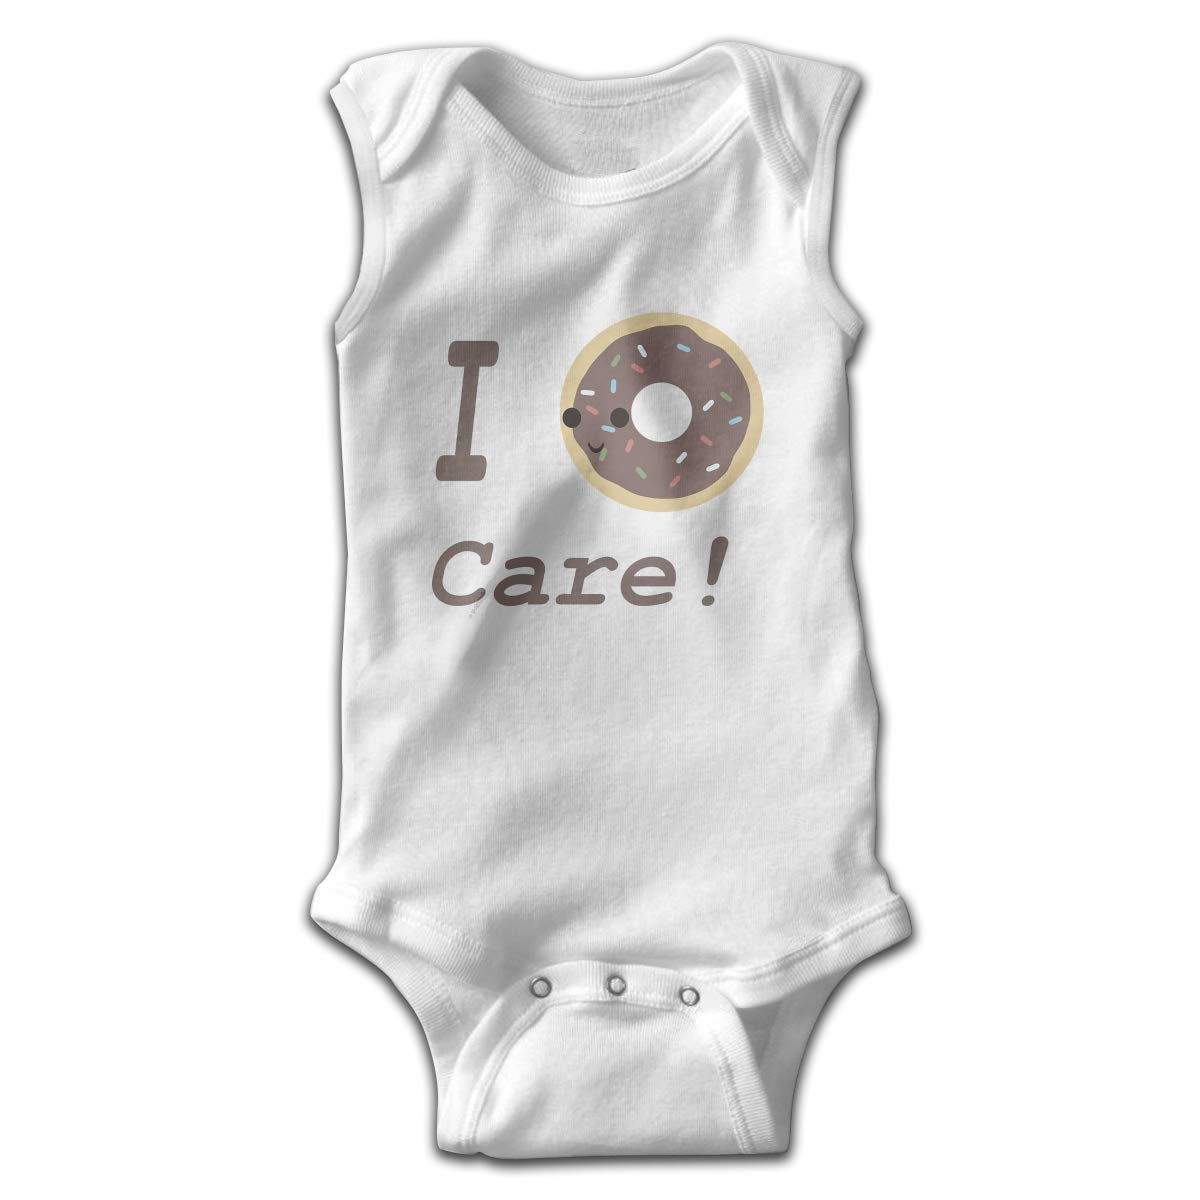 Efbj Toddler Baby Girls Rompers Sleeveless Cotton Onesie,I Donut Care Outfit Summer Pajamas